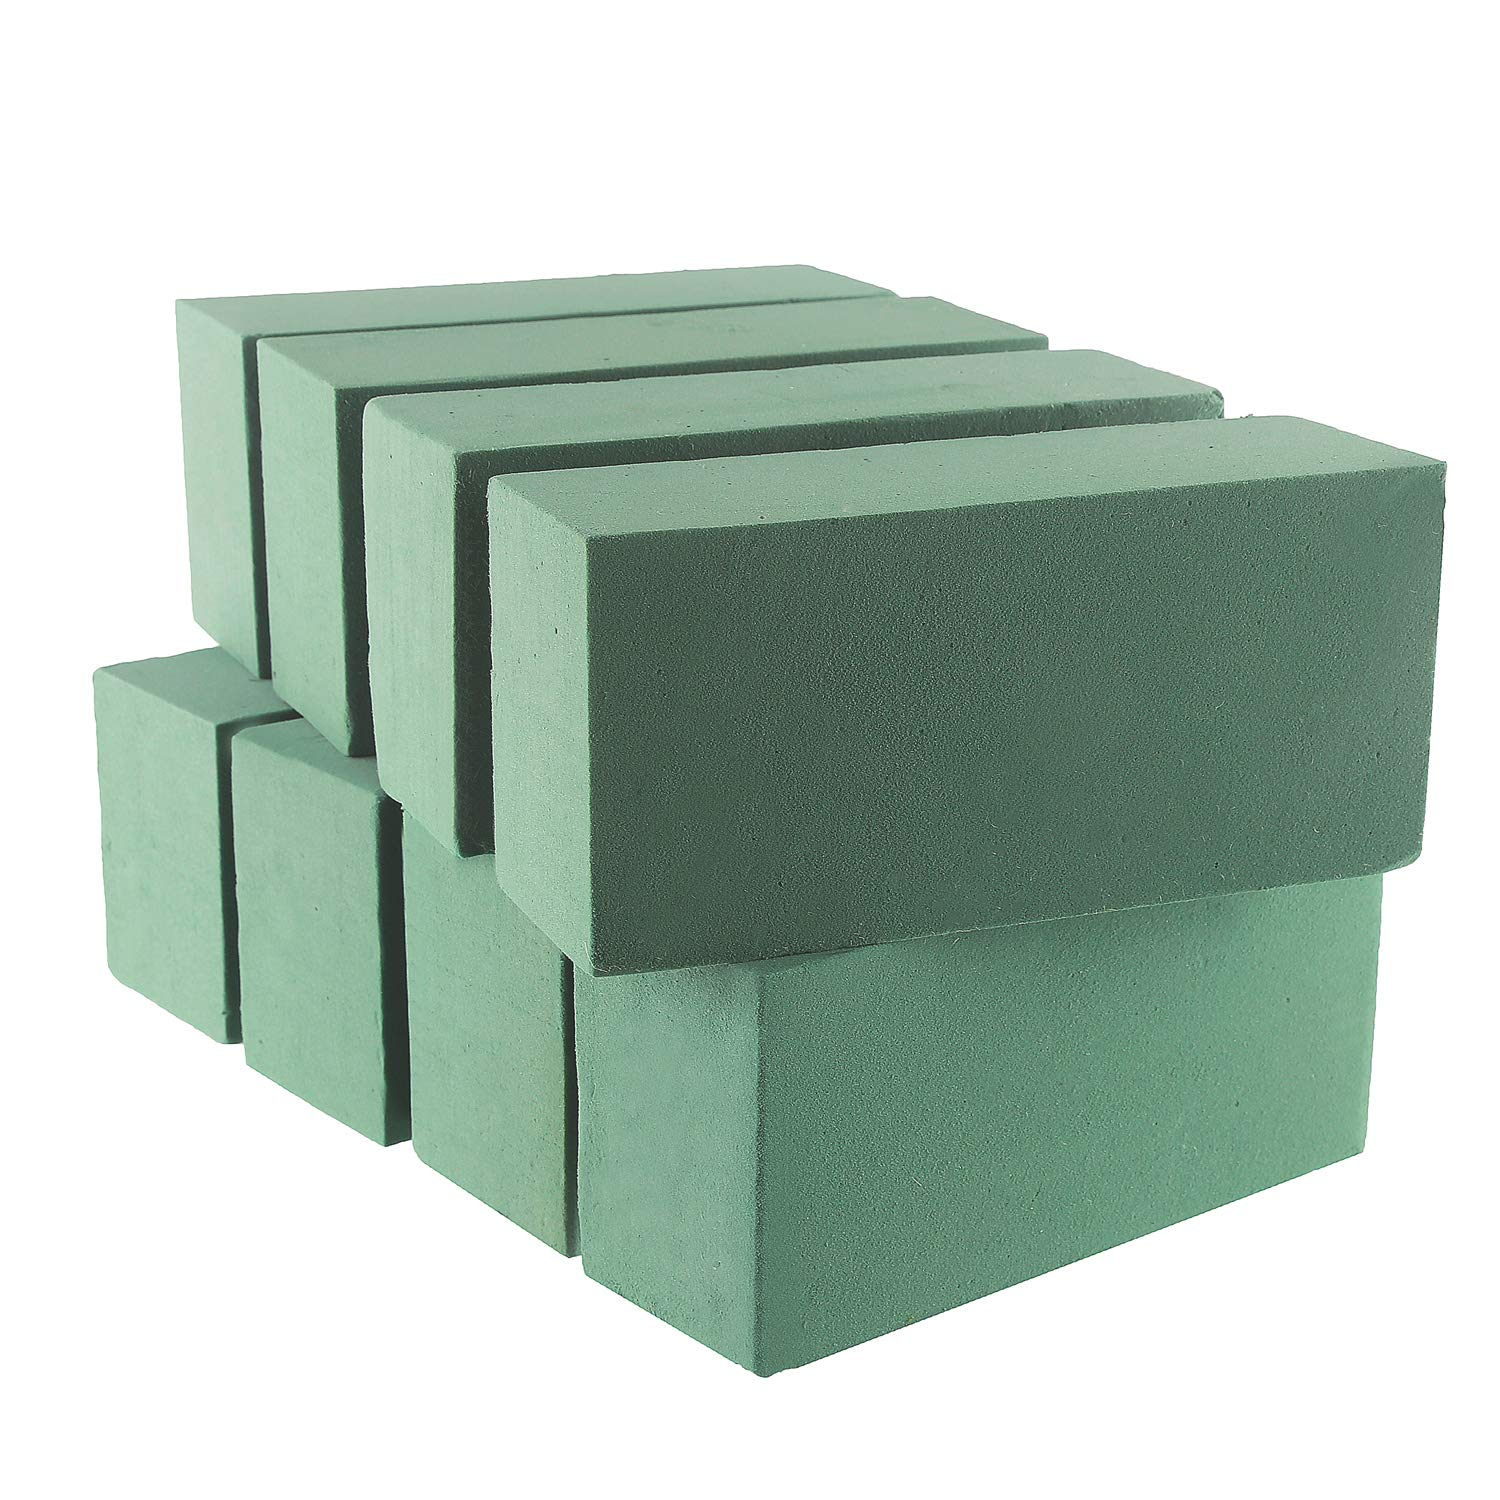 VEYLIN 8 PCS Wet Floral Foam Bricks Green Styrofoam Blocks for Fresh Cut Floral Arrangements 4336860732